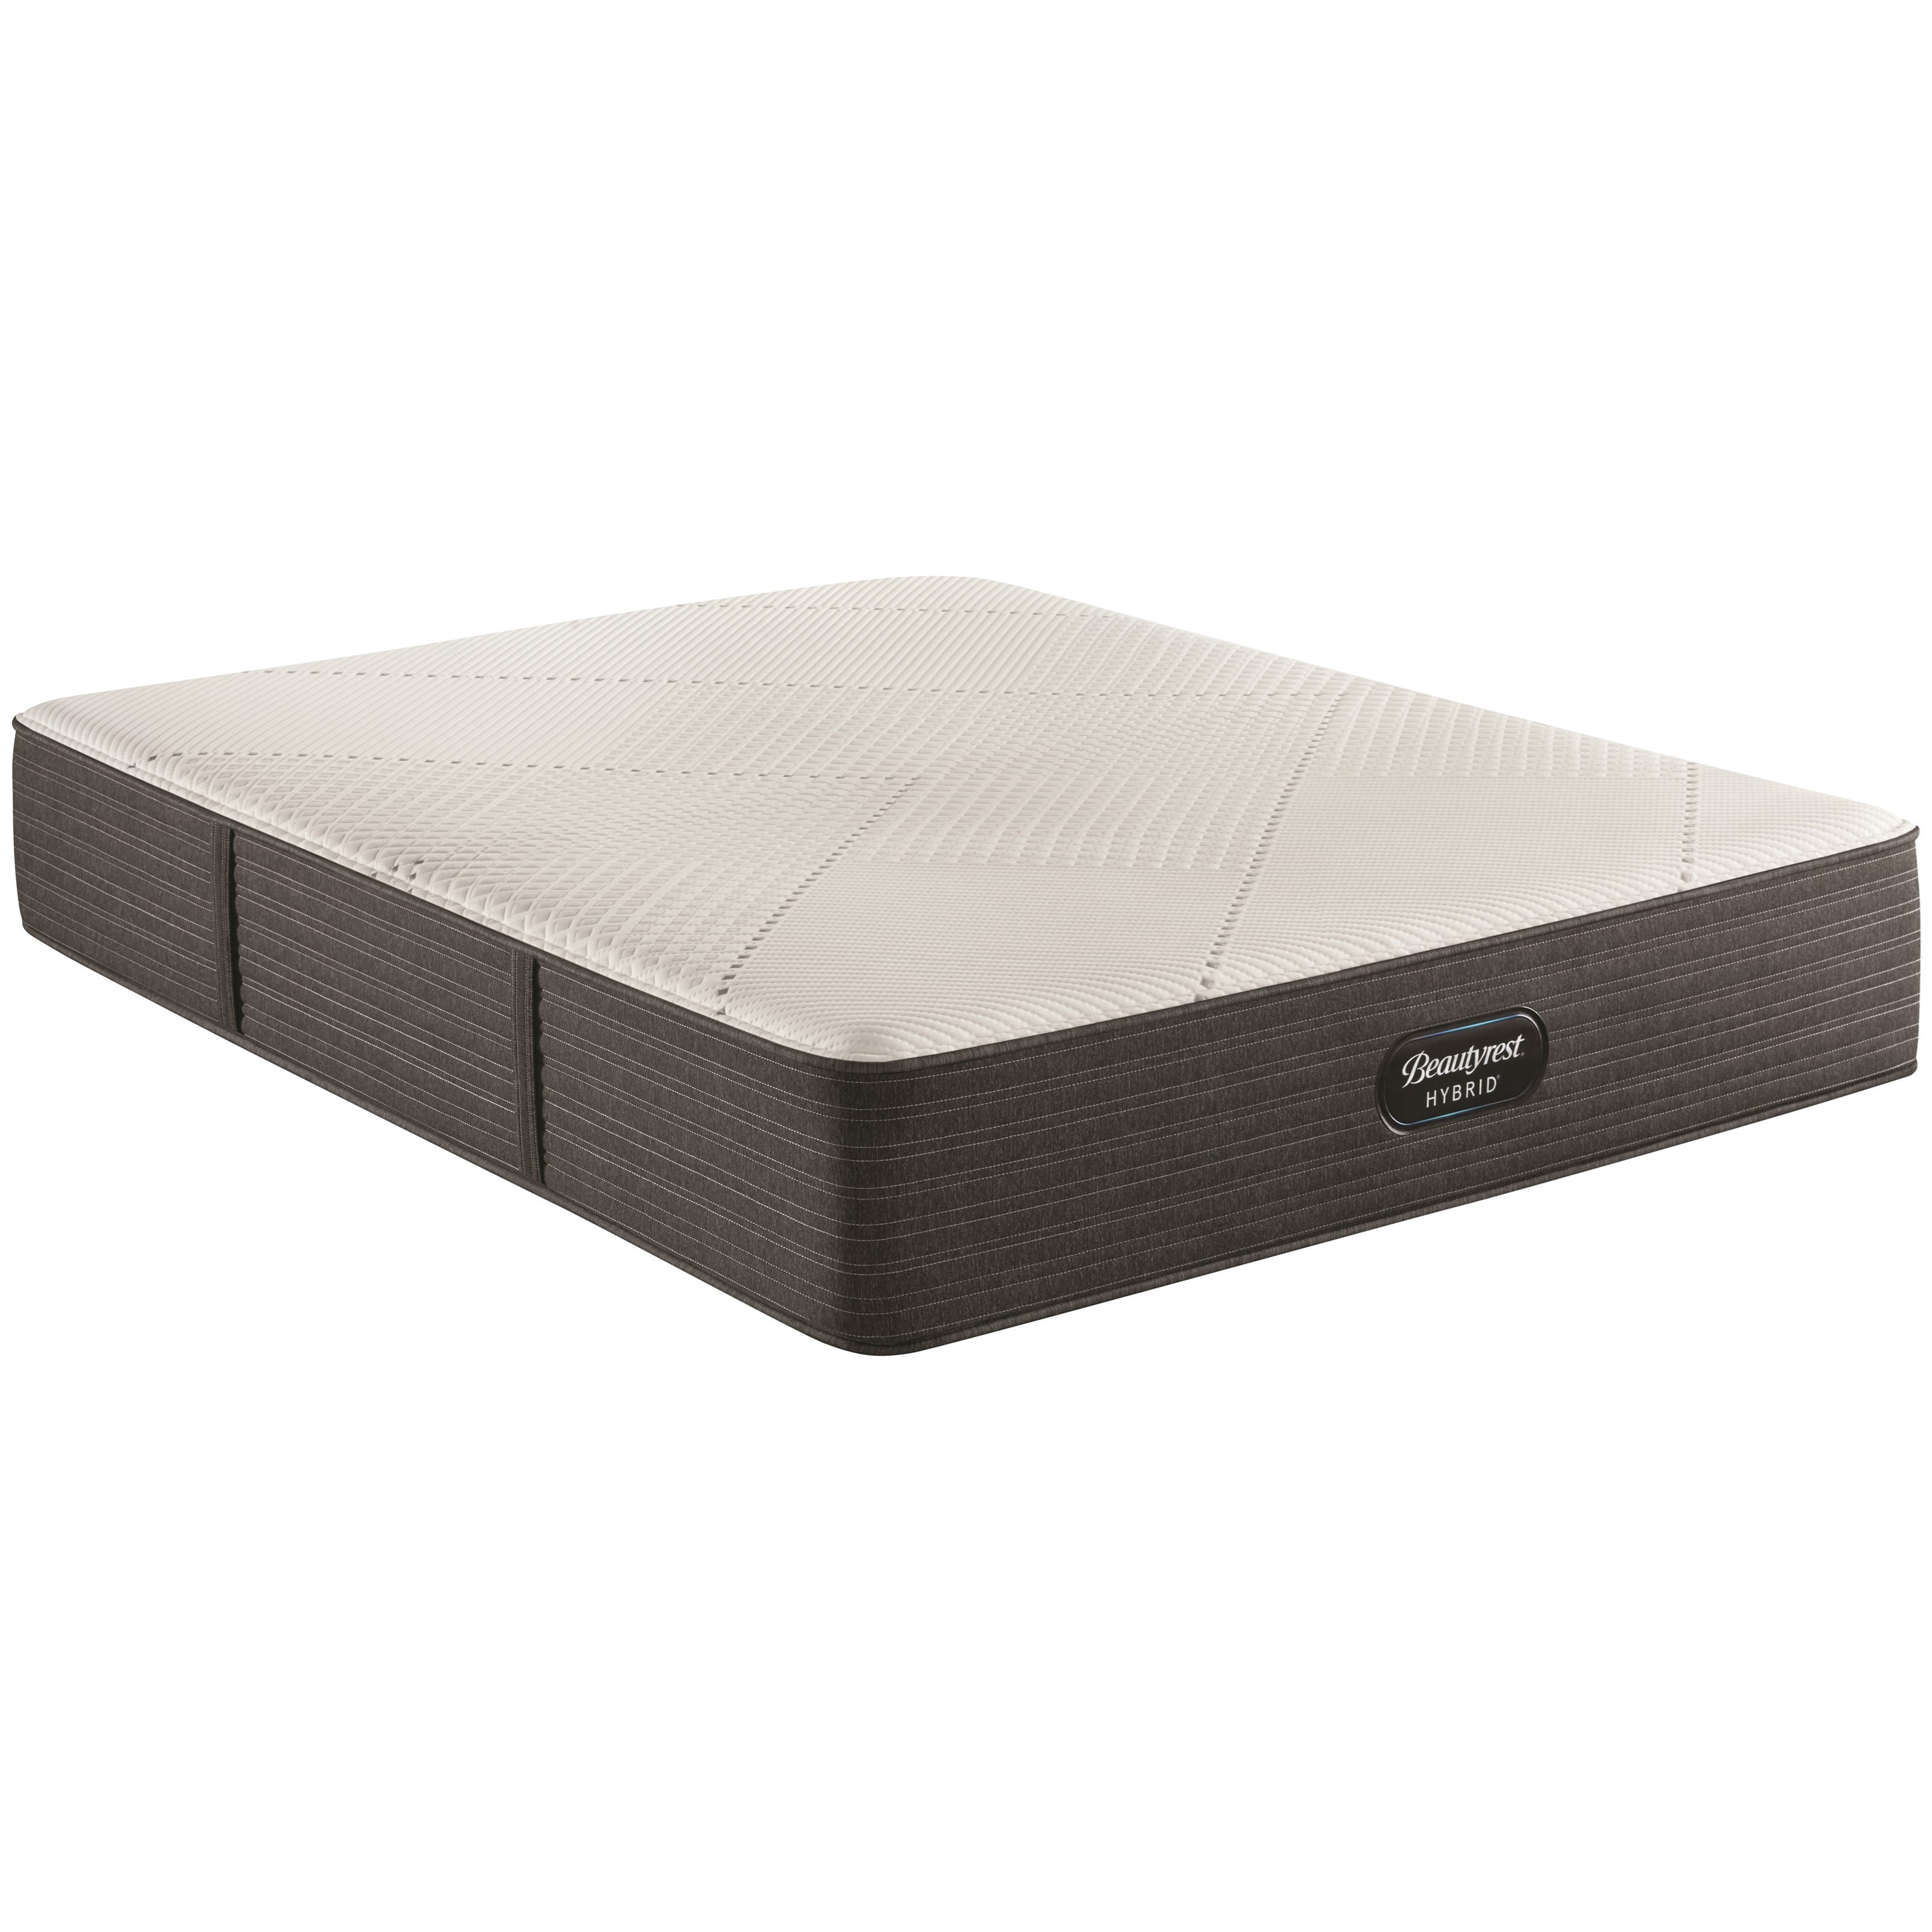 BRX1000-IP Plush Hybrid Beautyrest Queen Plush Hybrid Mattress by Beautyrest at HomeWorld Furniture